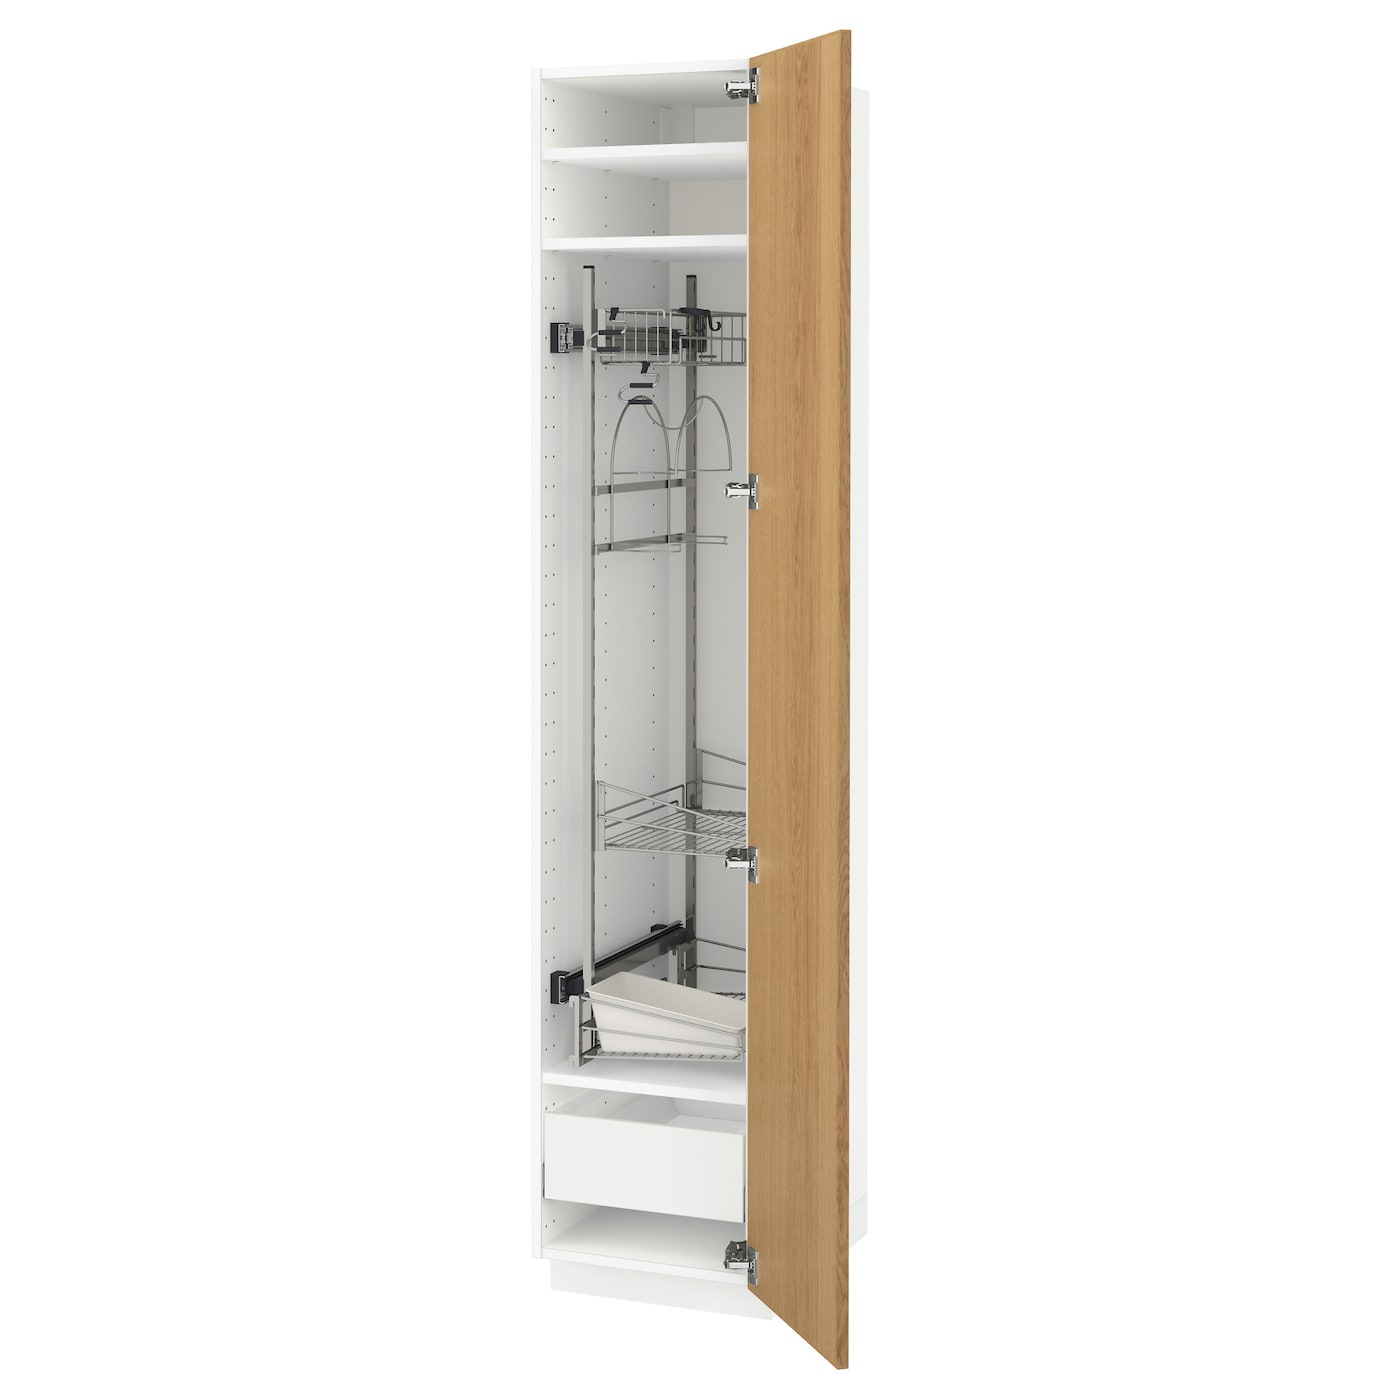 IKEA METOD/MAXIMERA high cabinet with cleaning interior Sturdy frame construction, 18 mm thick.